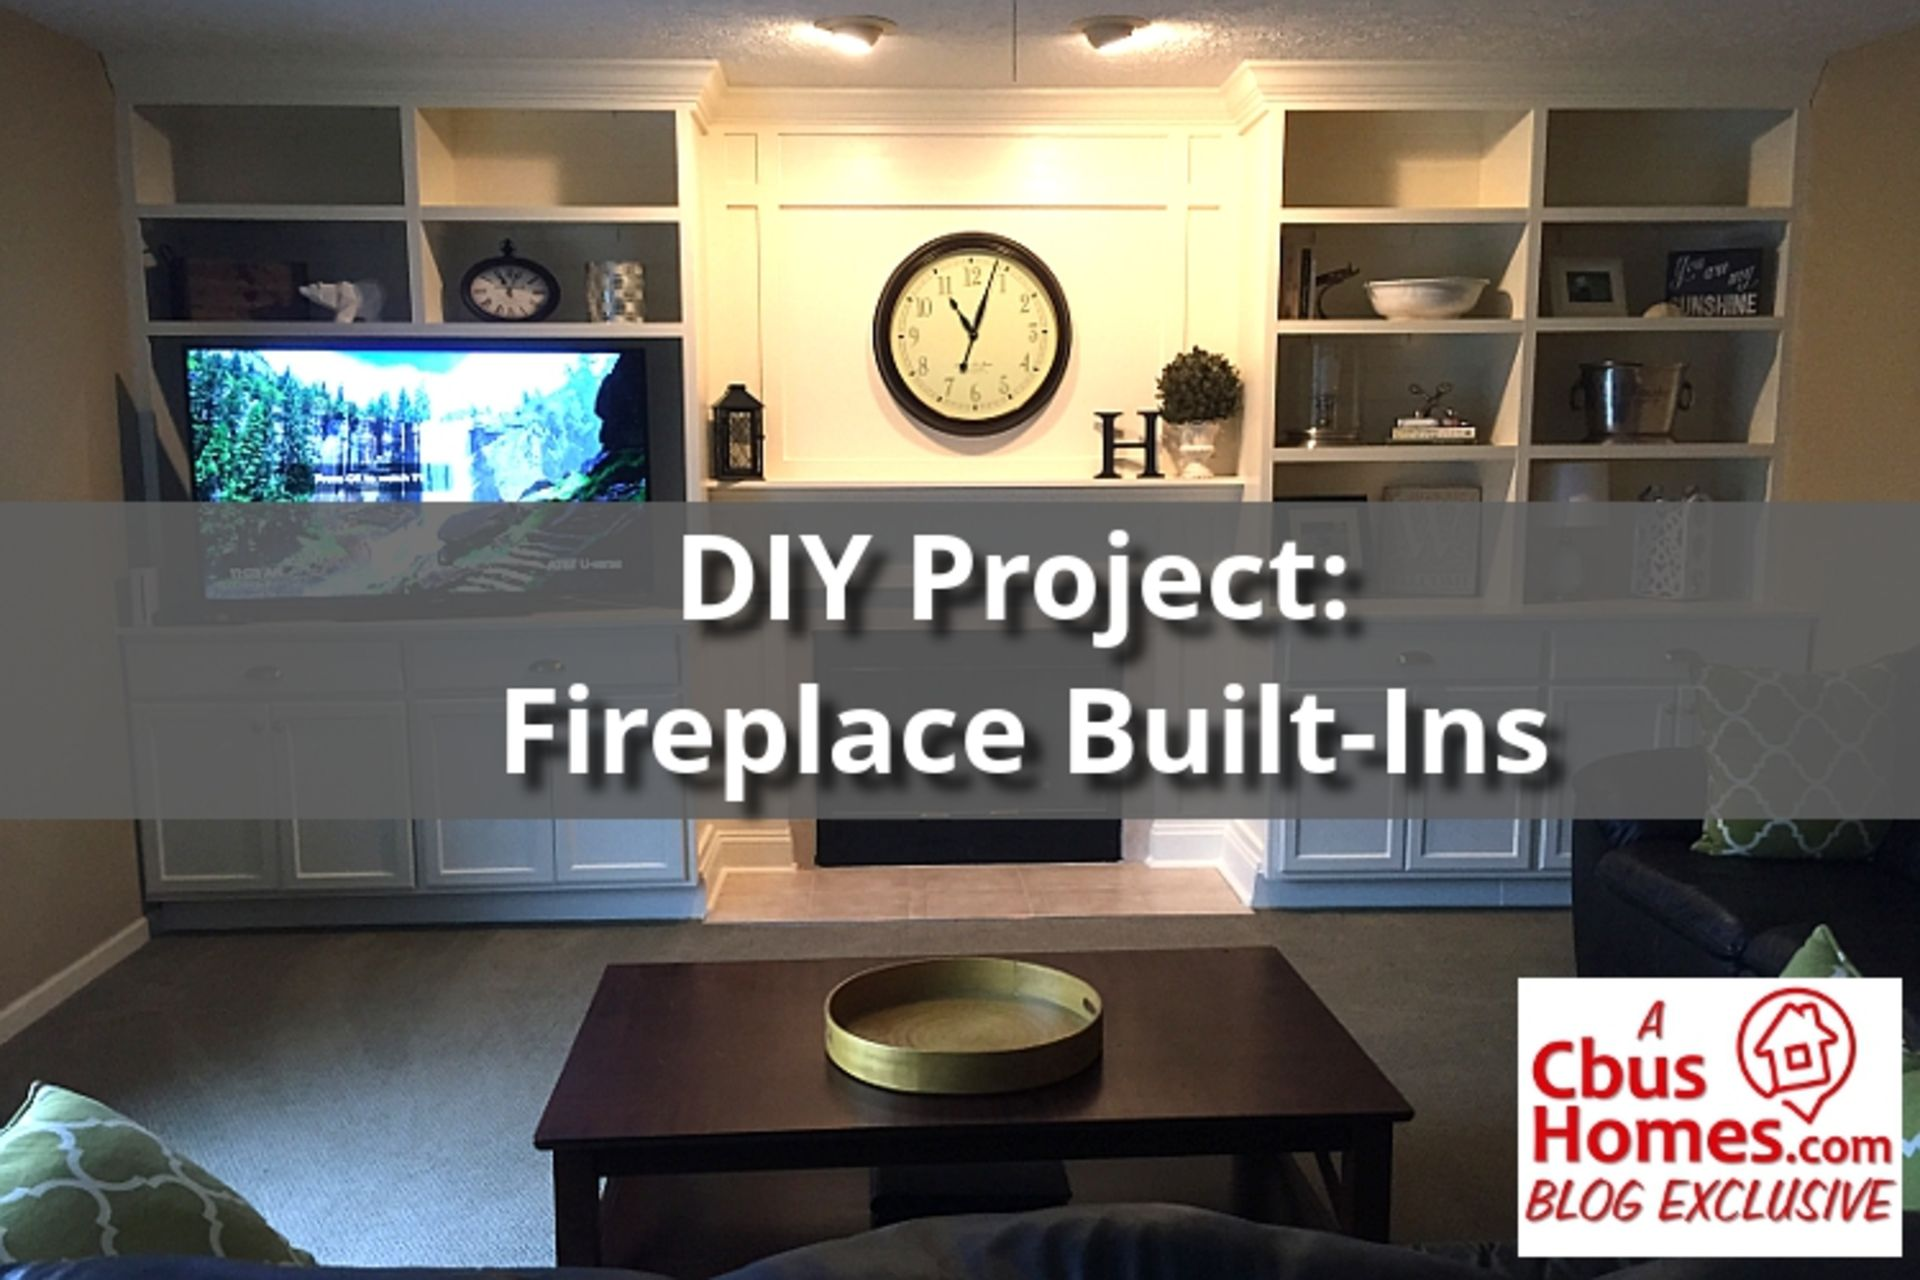 Fireplace Built-Ins Are HOT! And You Can Do It Yourself!